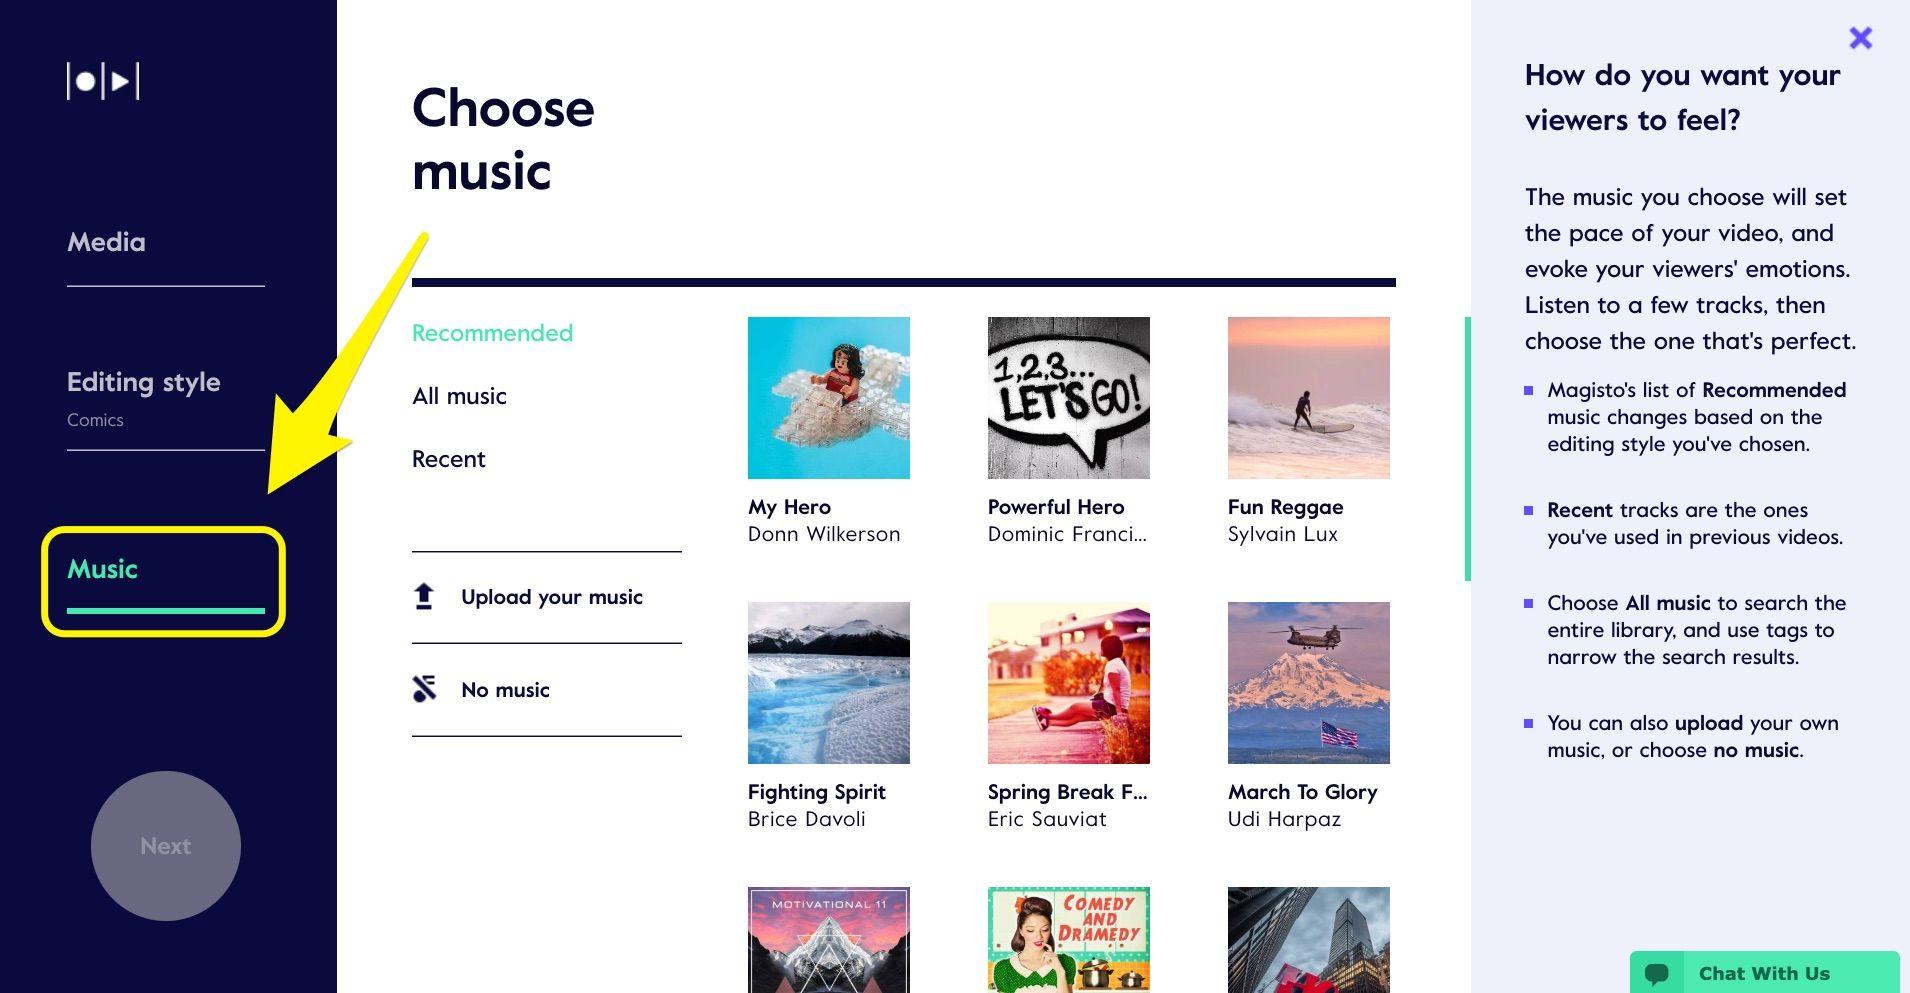 Choose music